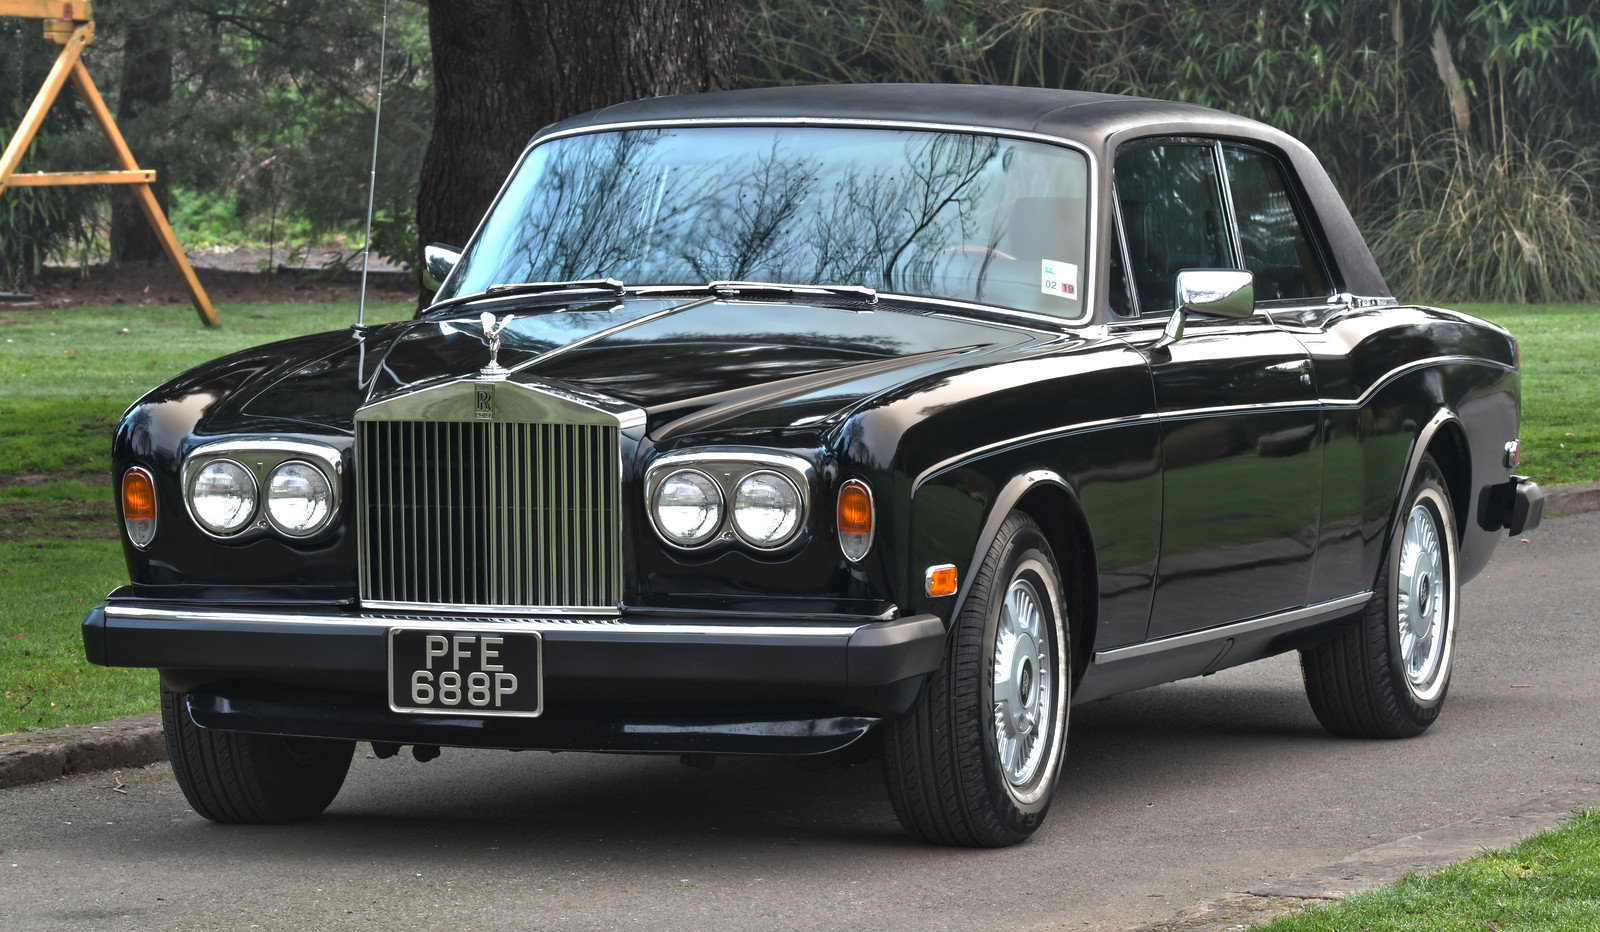 1976 Rolls Royce Corniche II Coupe LHD SOLD (picture 1 of 6)